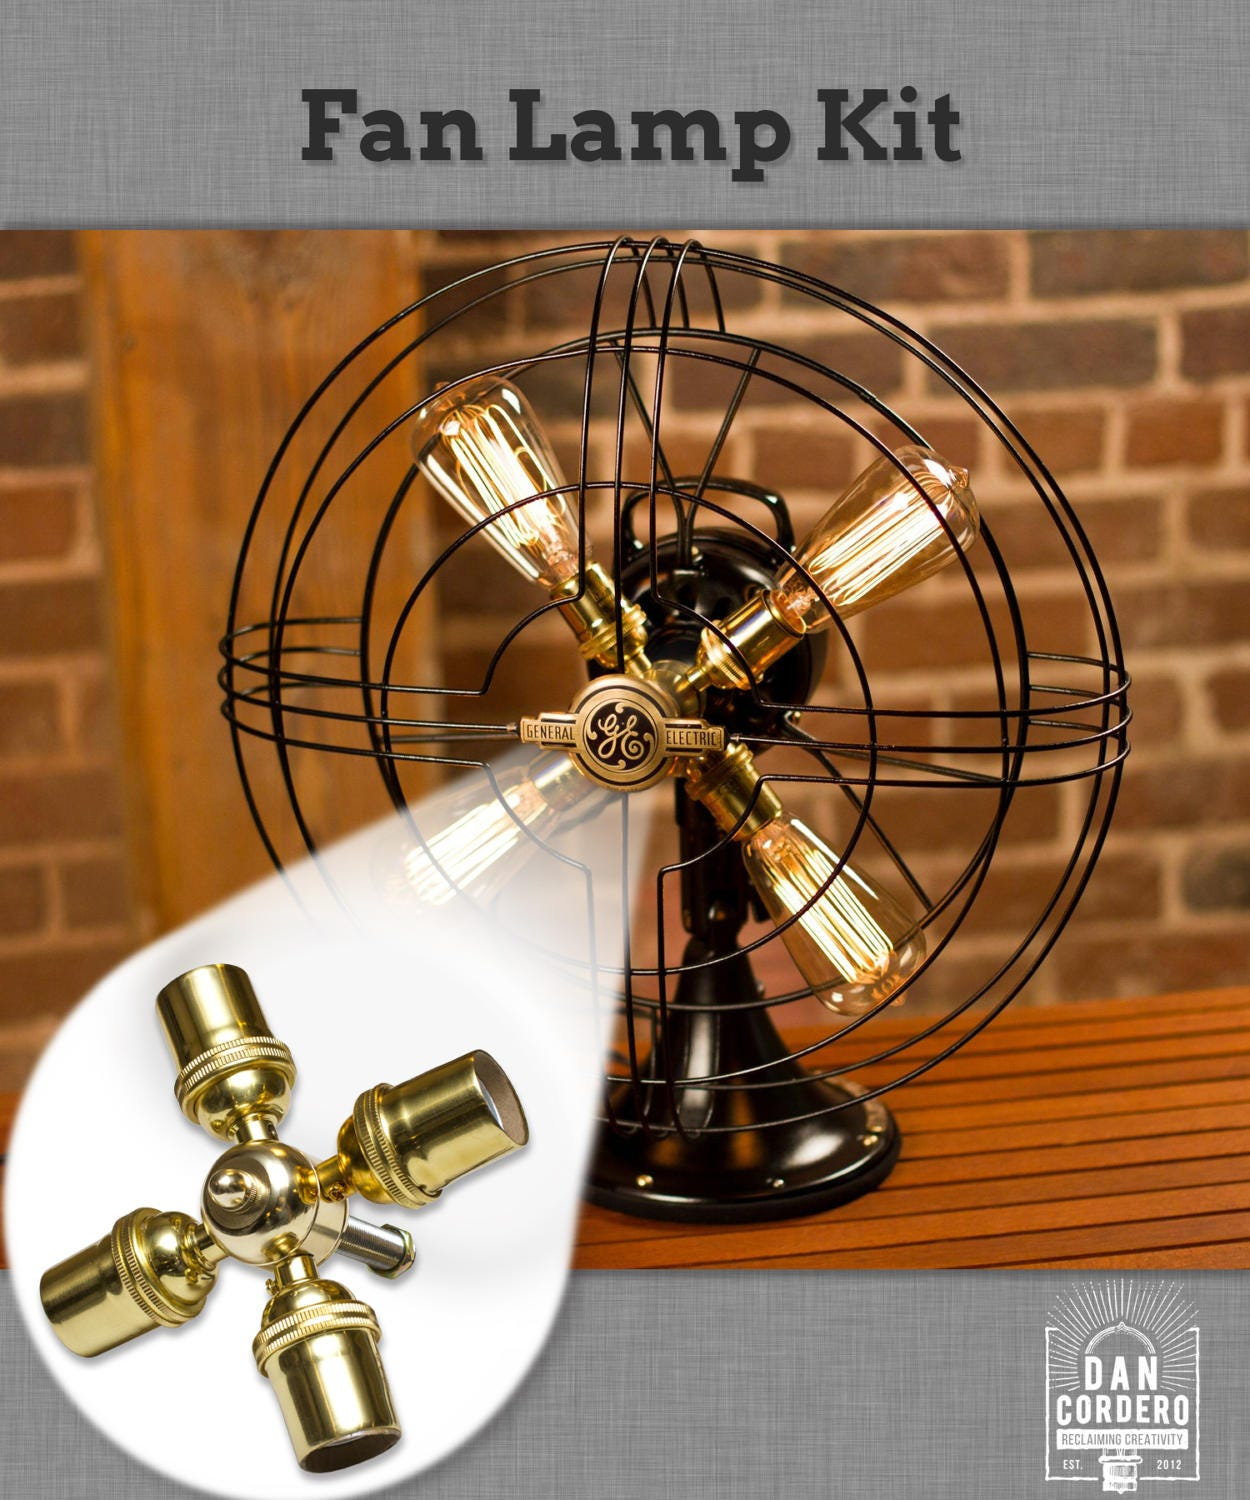 Fan lamp kit diy kit how to lamp parts lamp supplies zoom mozeypictures Images